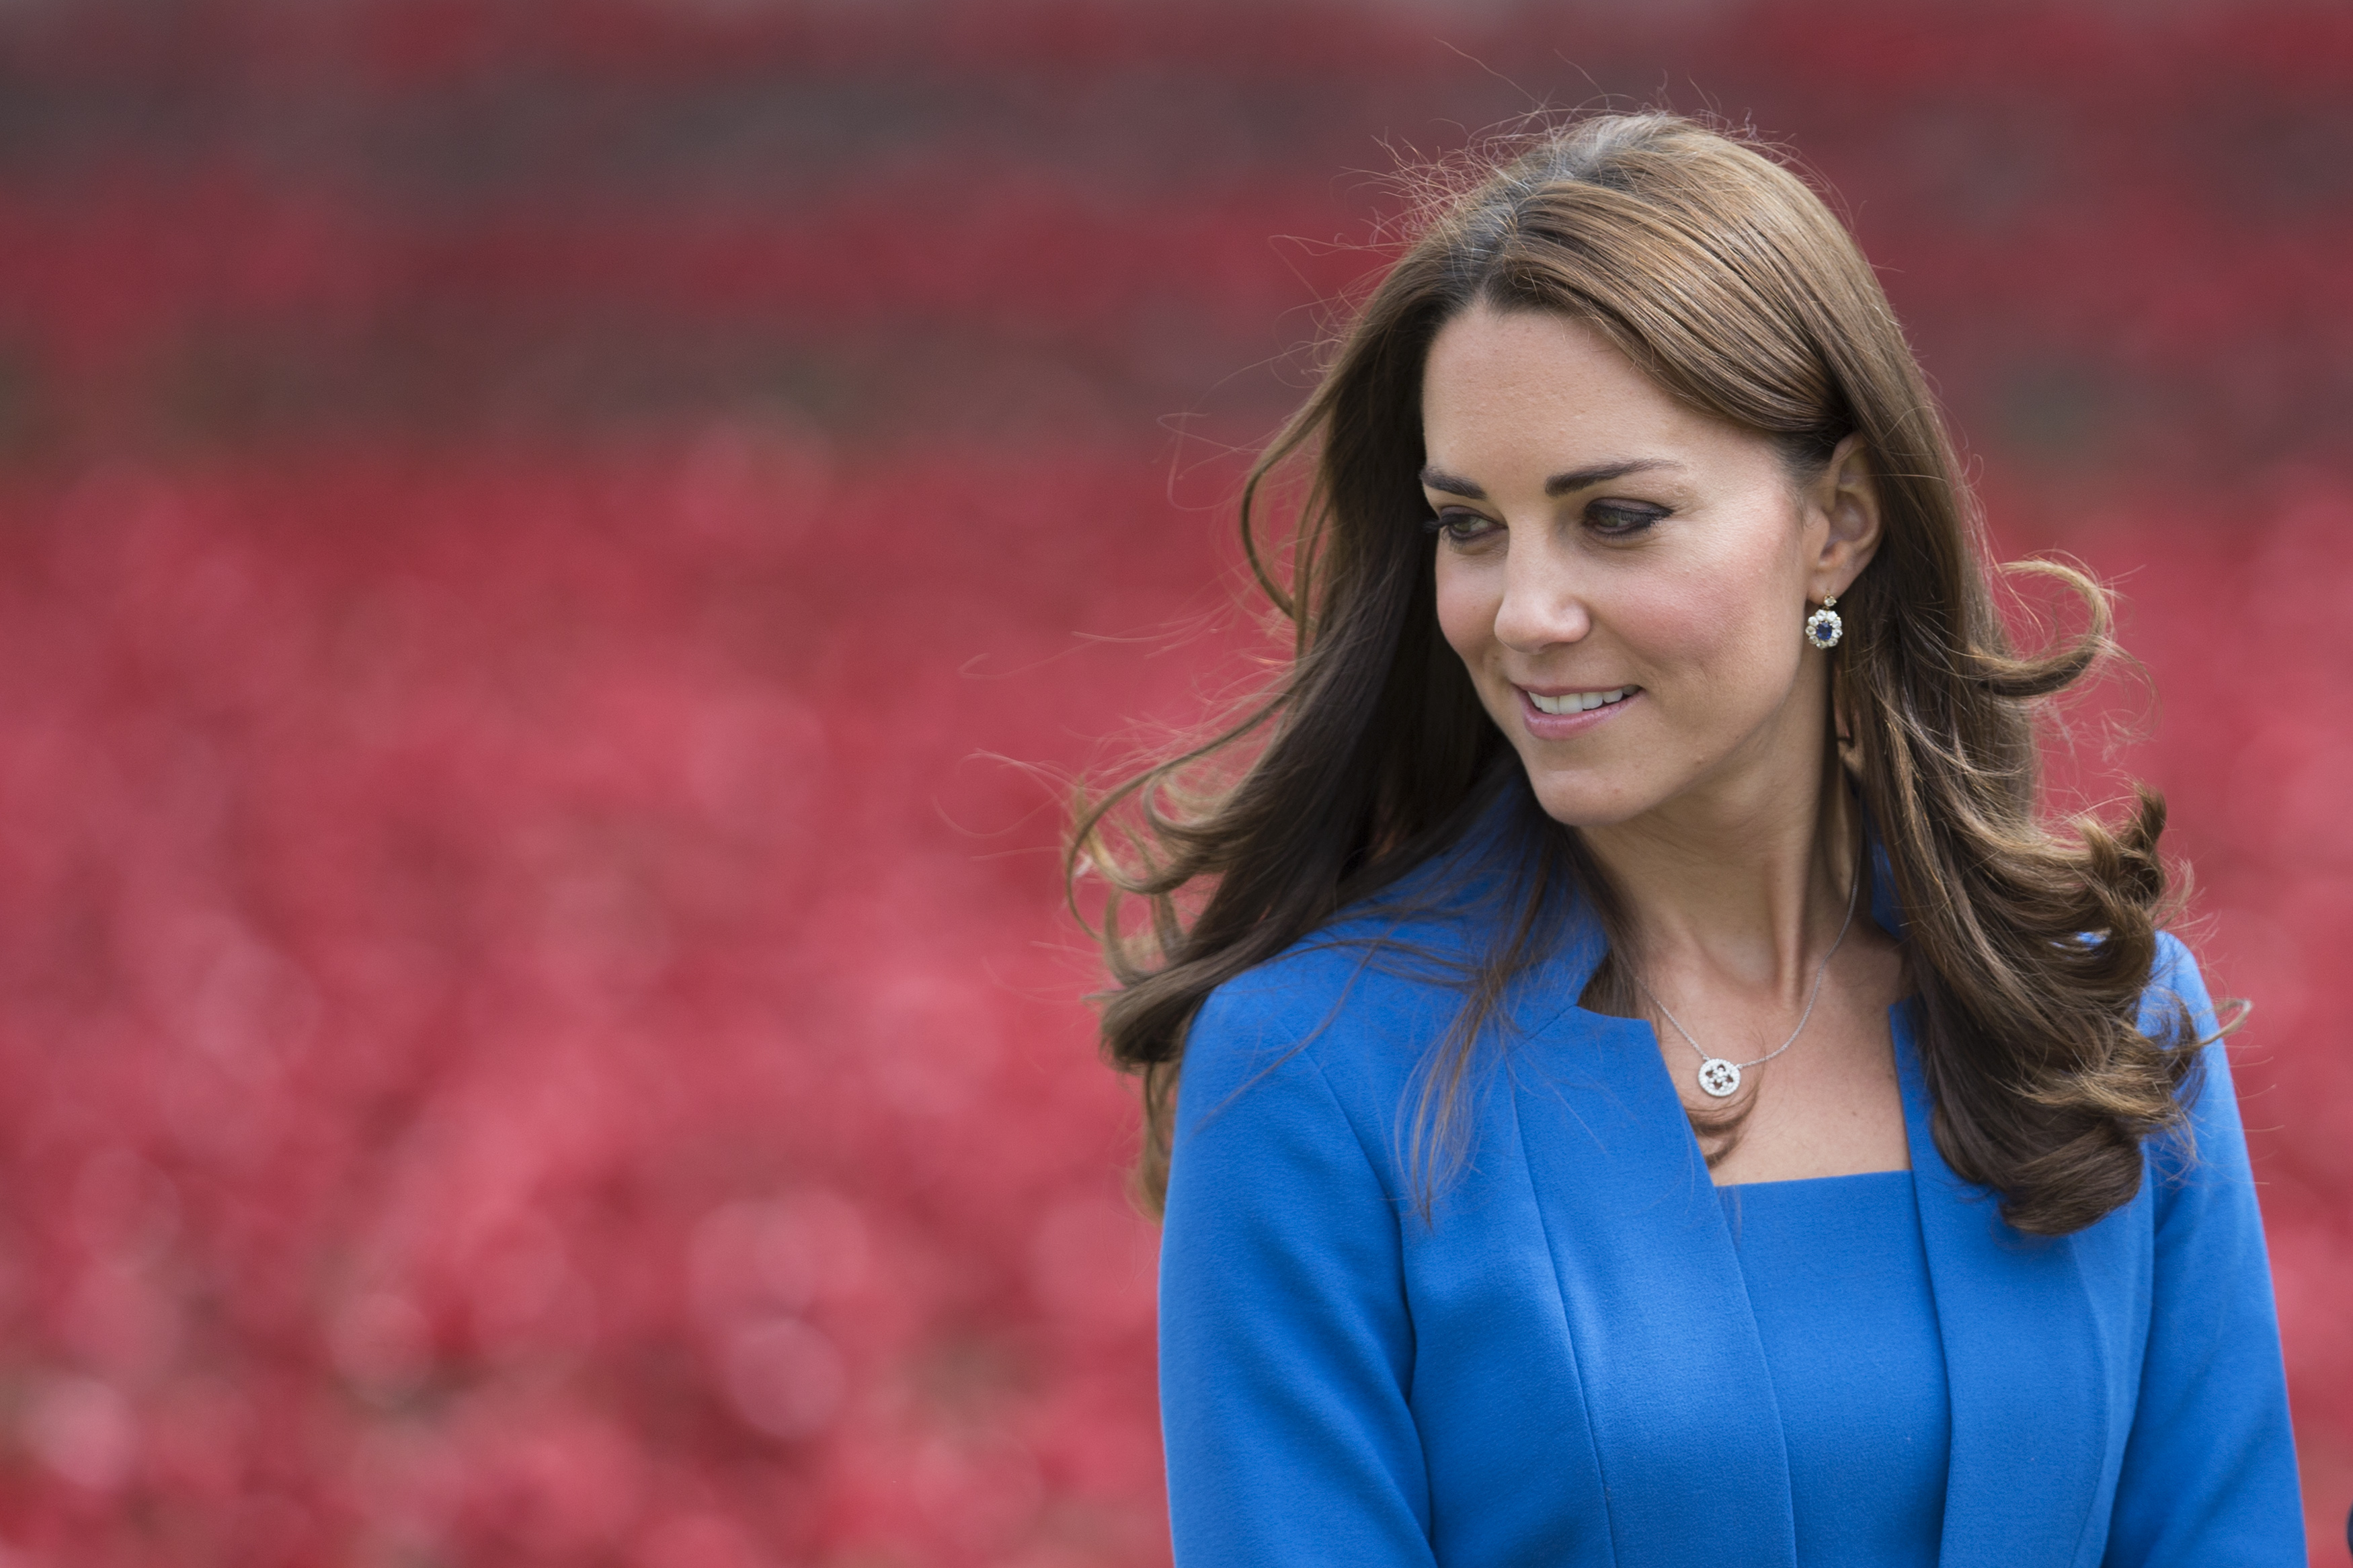 kate middleton wallpaper background 60854